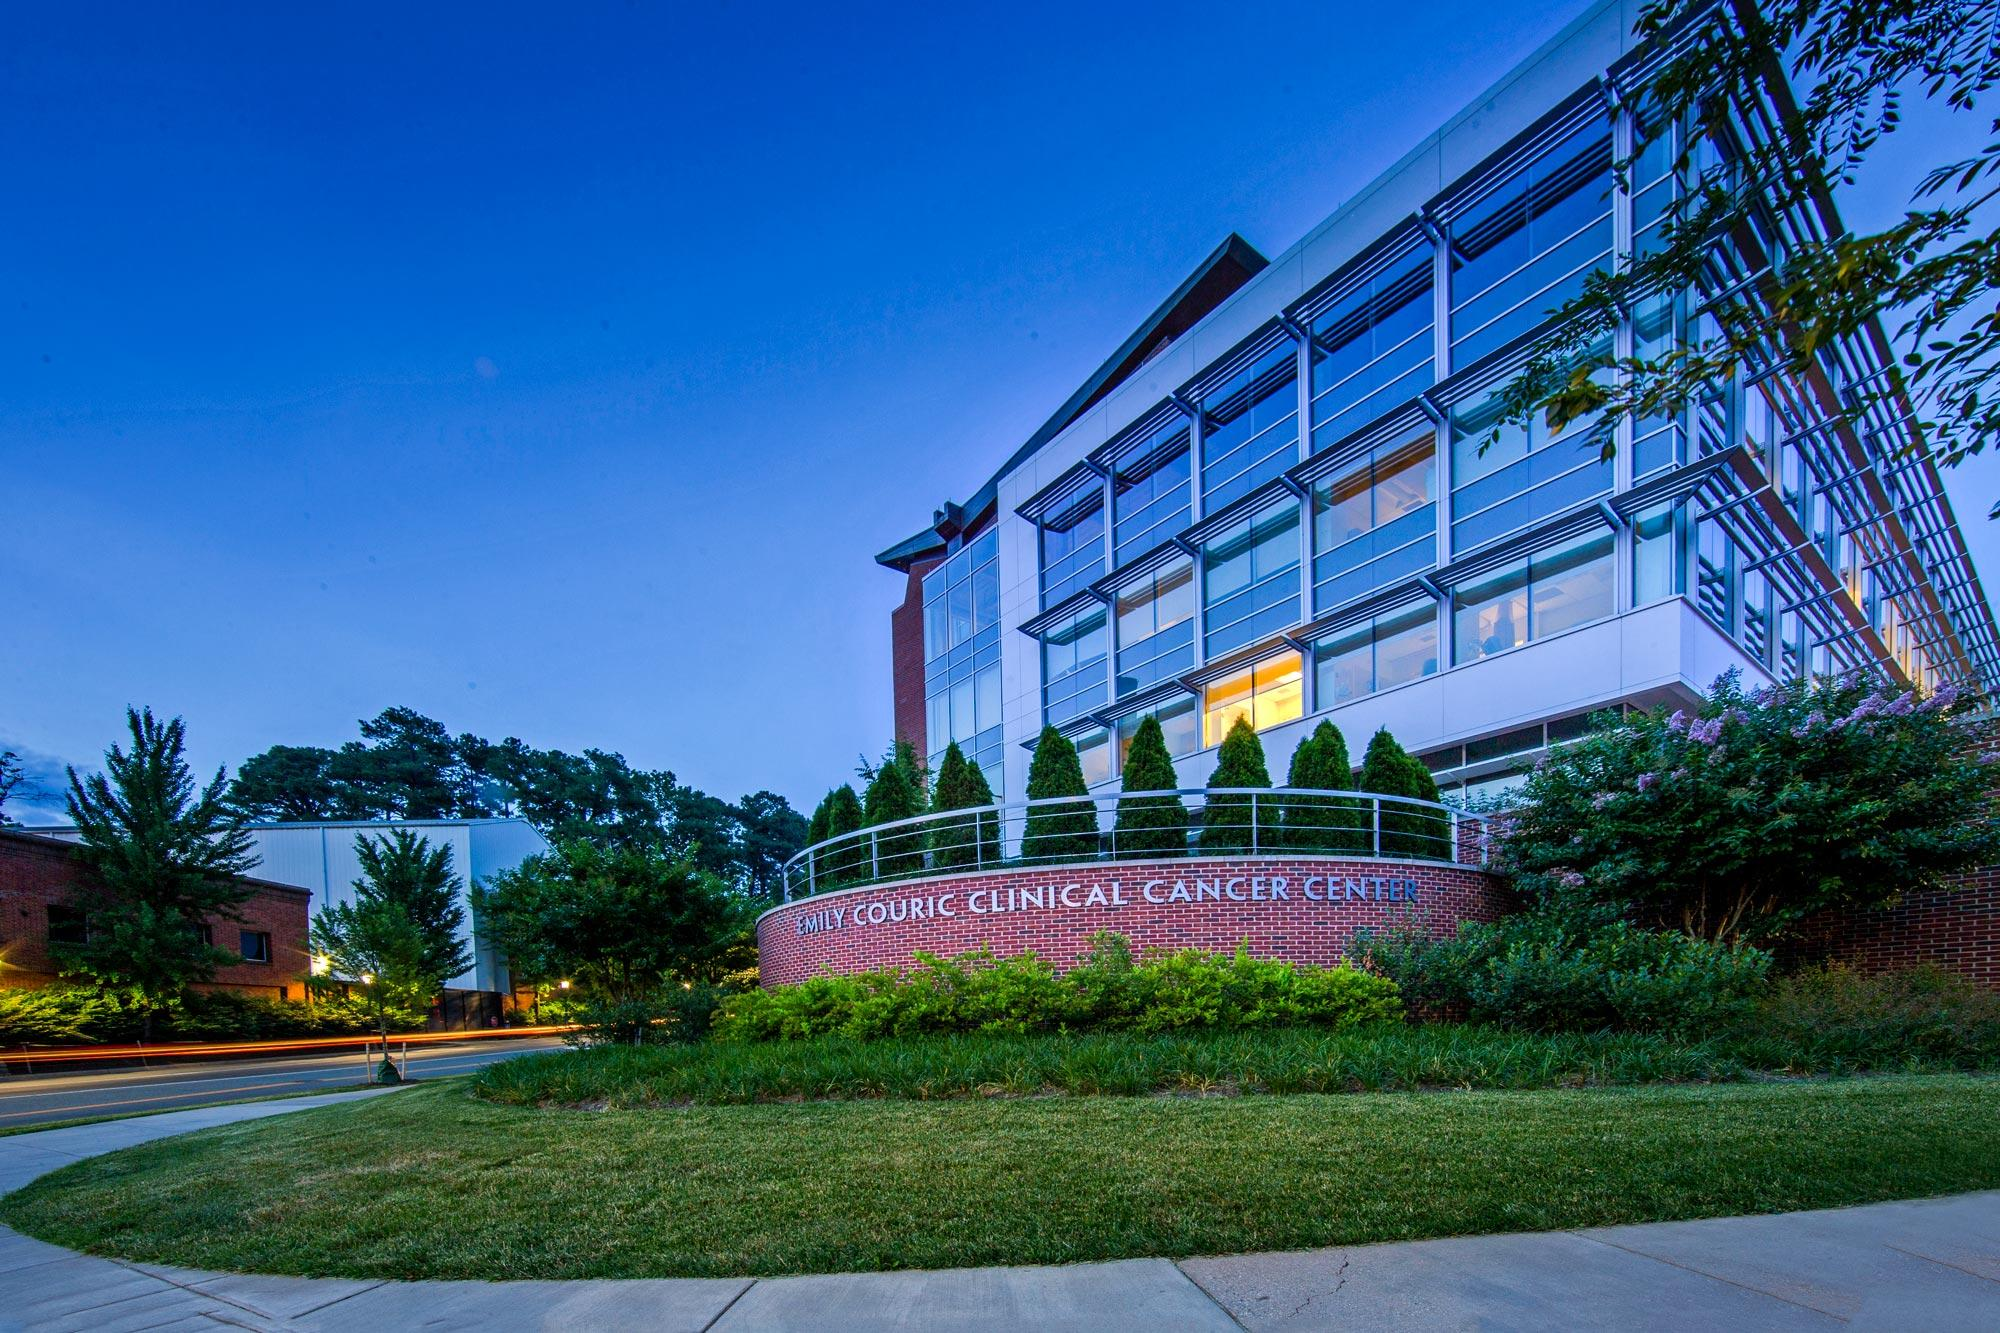 UVA's Cancer Center, one of 71 NCI-designated centers nationwide, serves approximately 4 million people in Virginia and West Virginia.